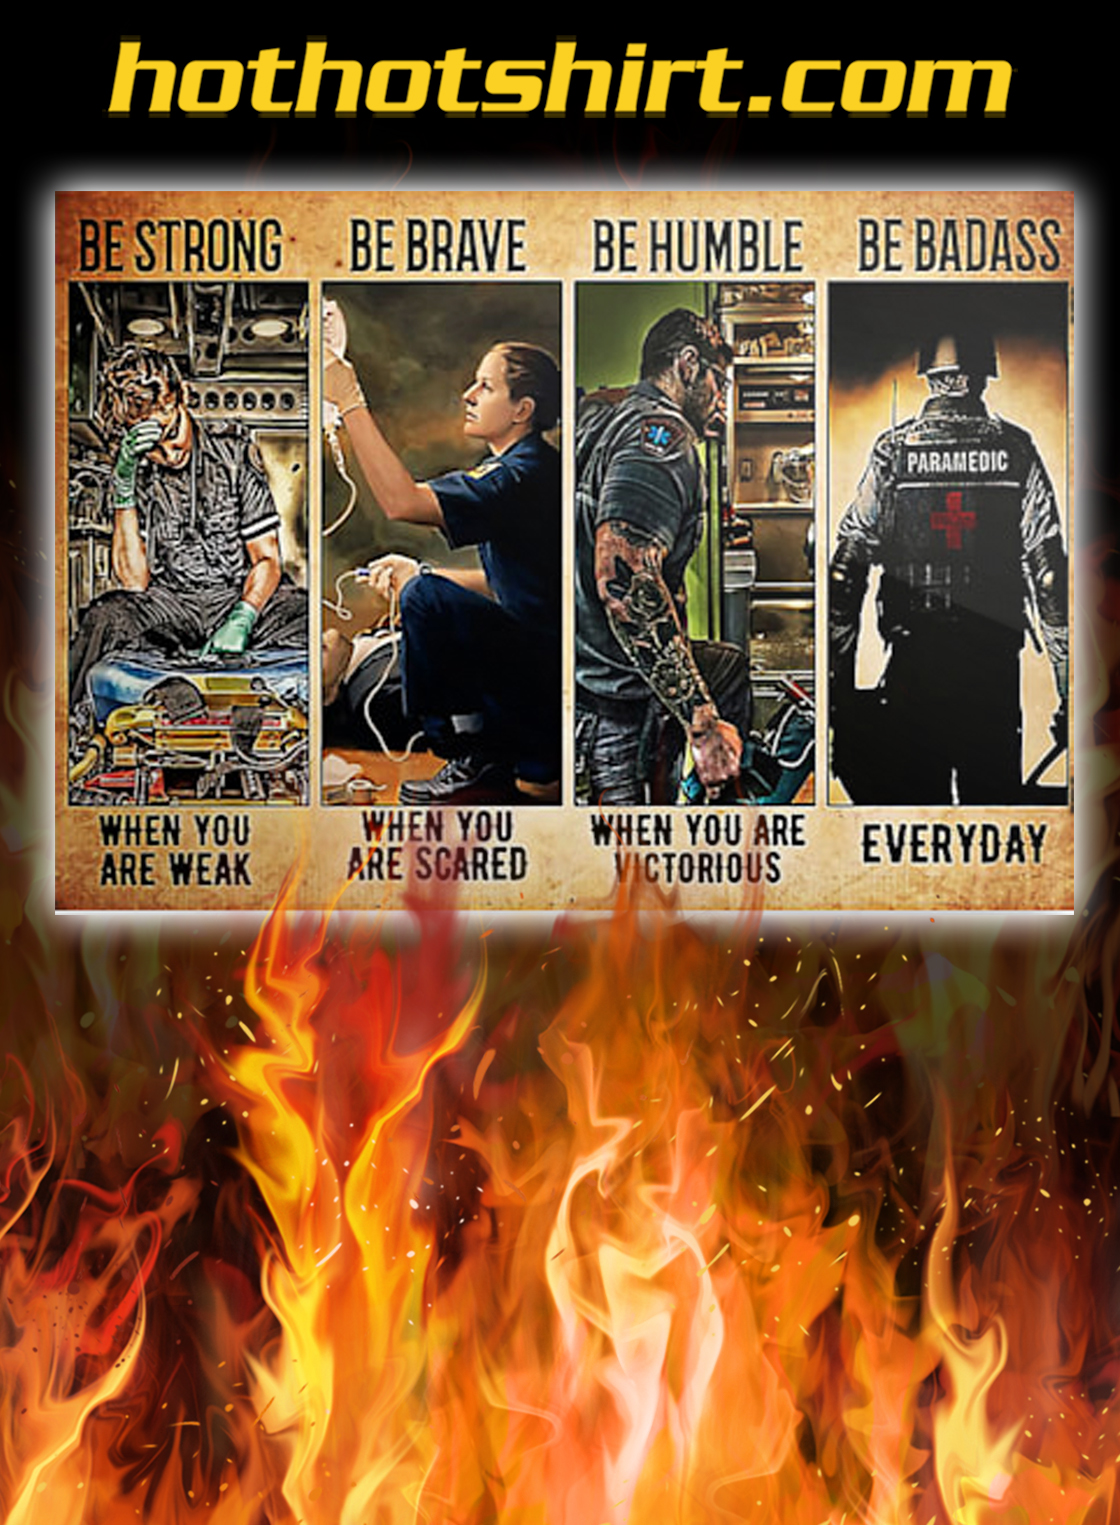 Rescue Paramedic be strong be brave be humble be badass poster - A4